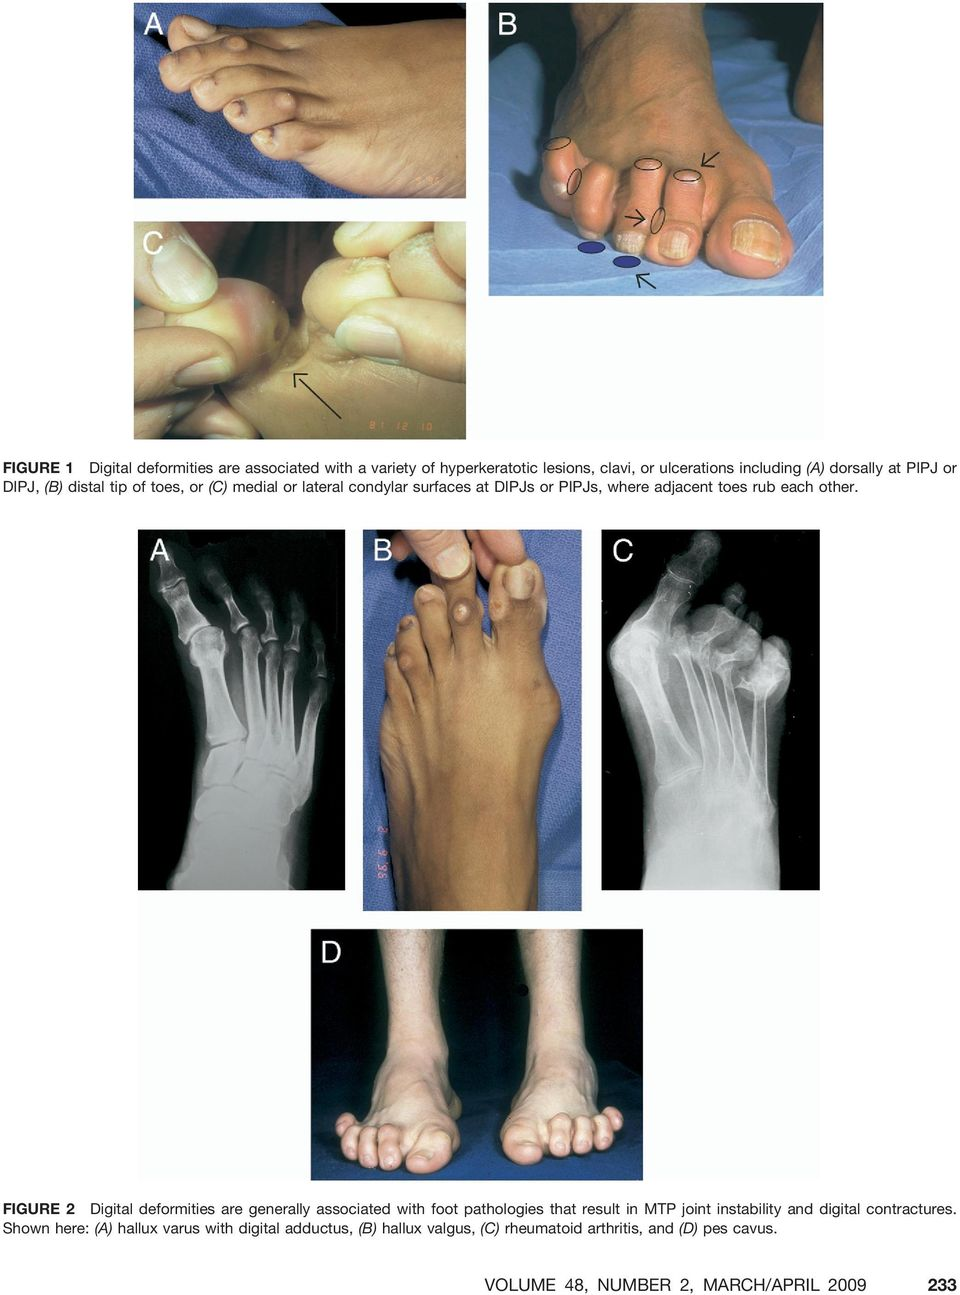 FIGURE 2 Digital deformities are generally associated with foot pathologies that result in MTP joint instability and digital contractures.